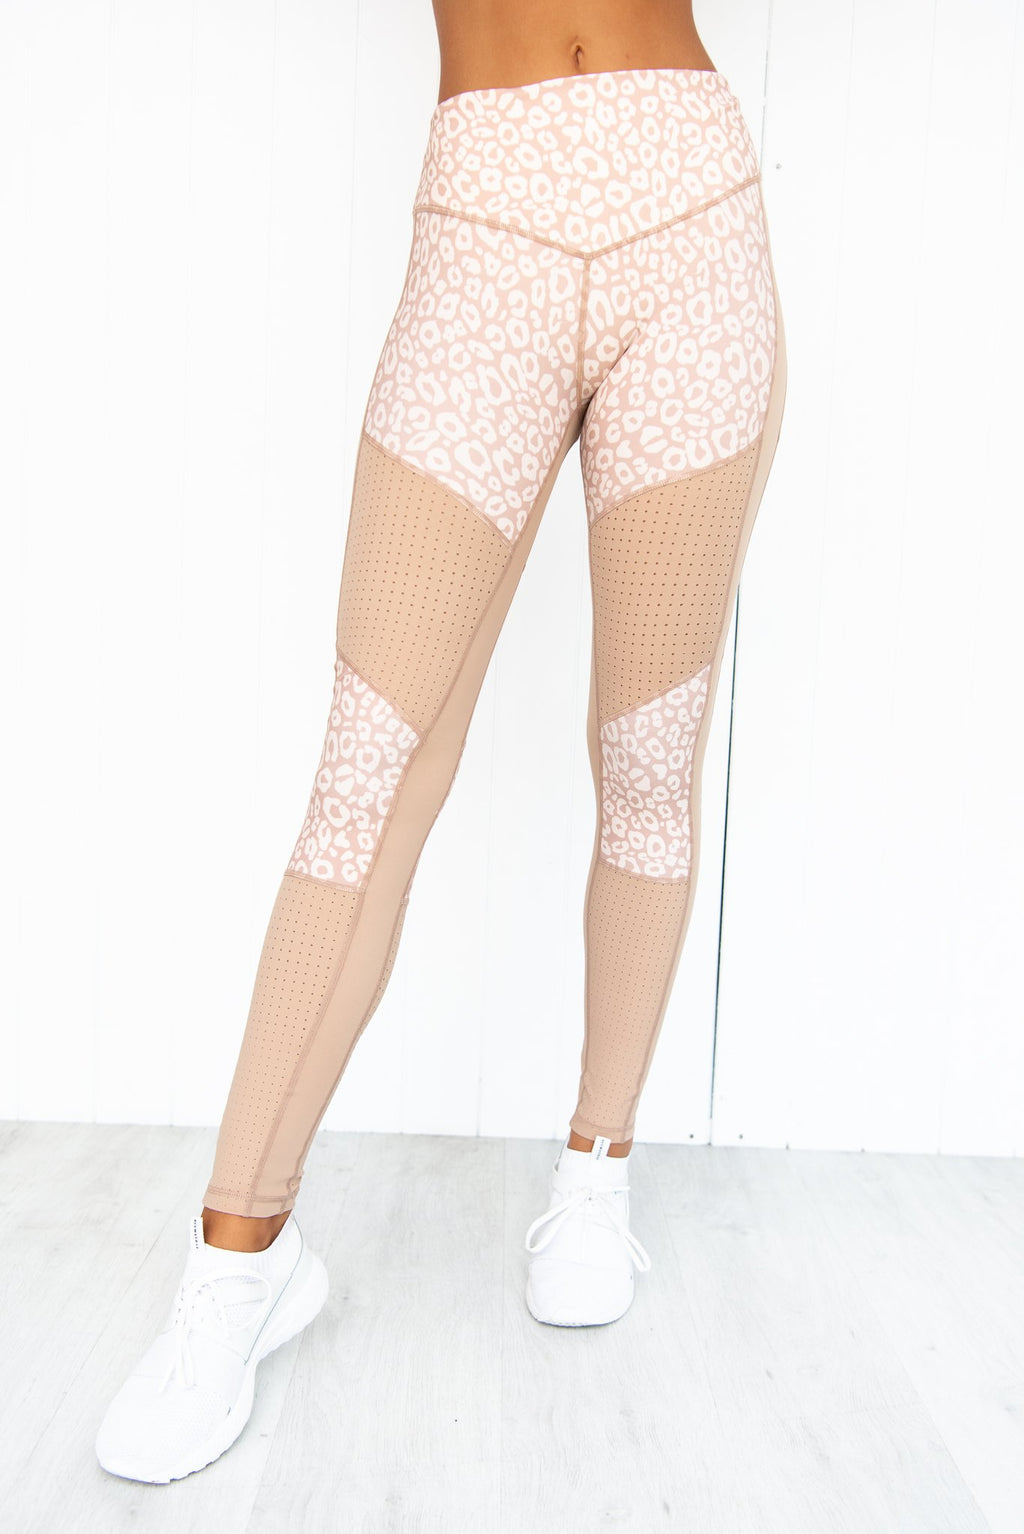 Soft Ambience Leggings - Tan - PURE DASH